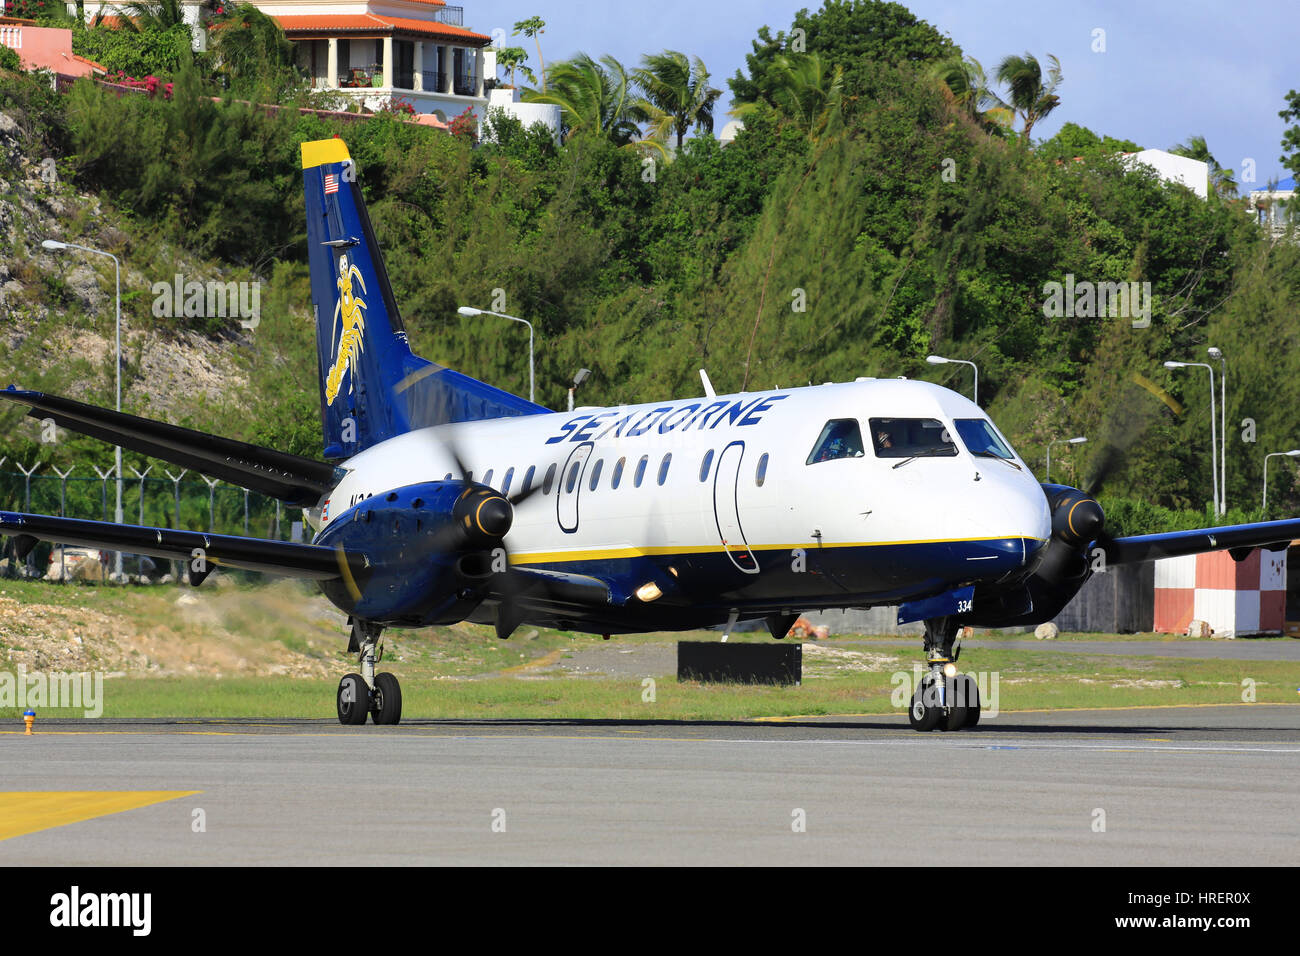 A Seaborne Airlines Saab SF.340 prepares to depart St. Maarten back to its operating base in San Juan, Puerto Rico. - Stock Image